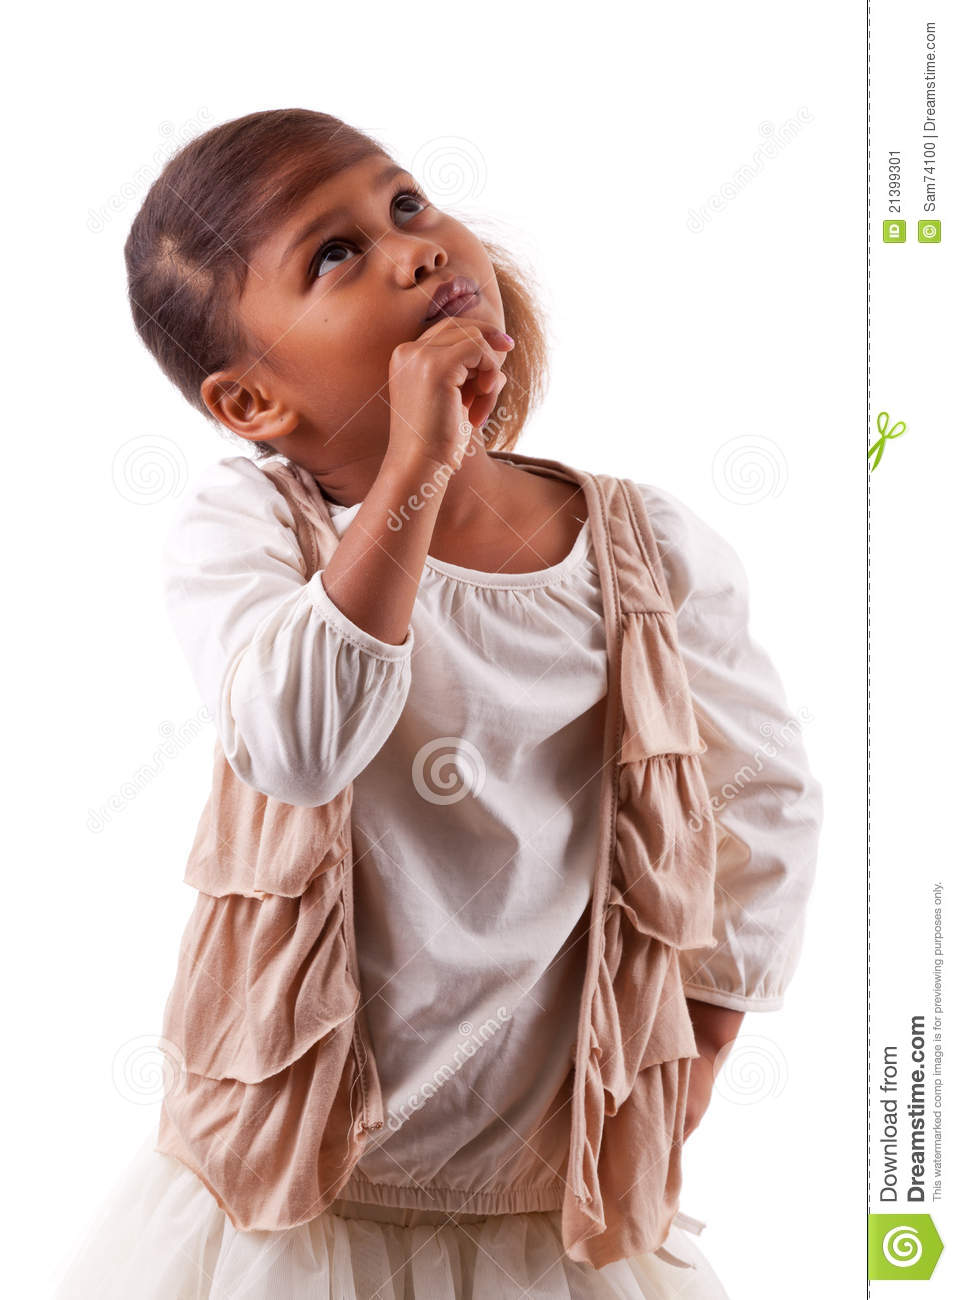 c8e481543 Cute Little African Asian Girl Thinking Stock Image - Image of ...